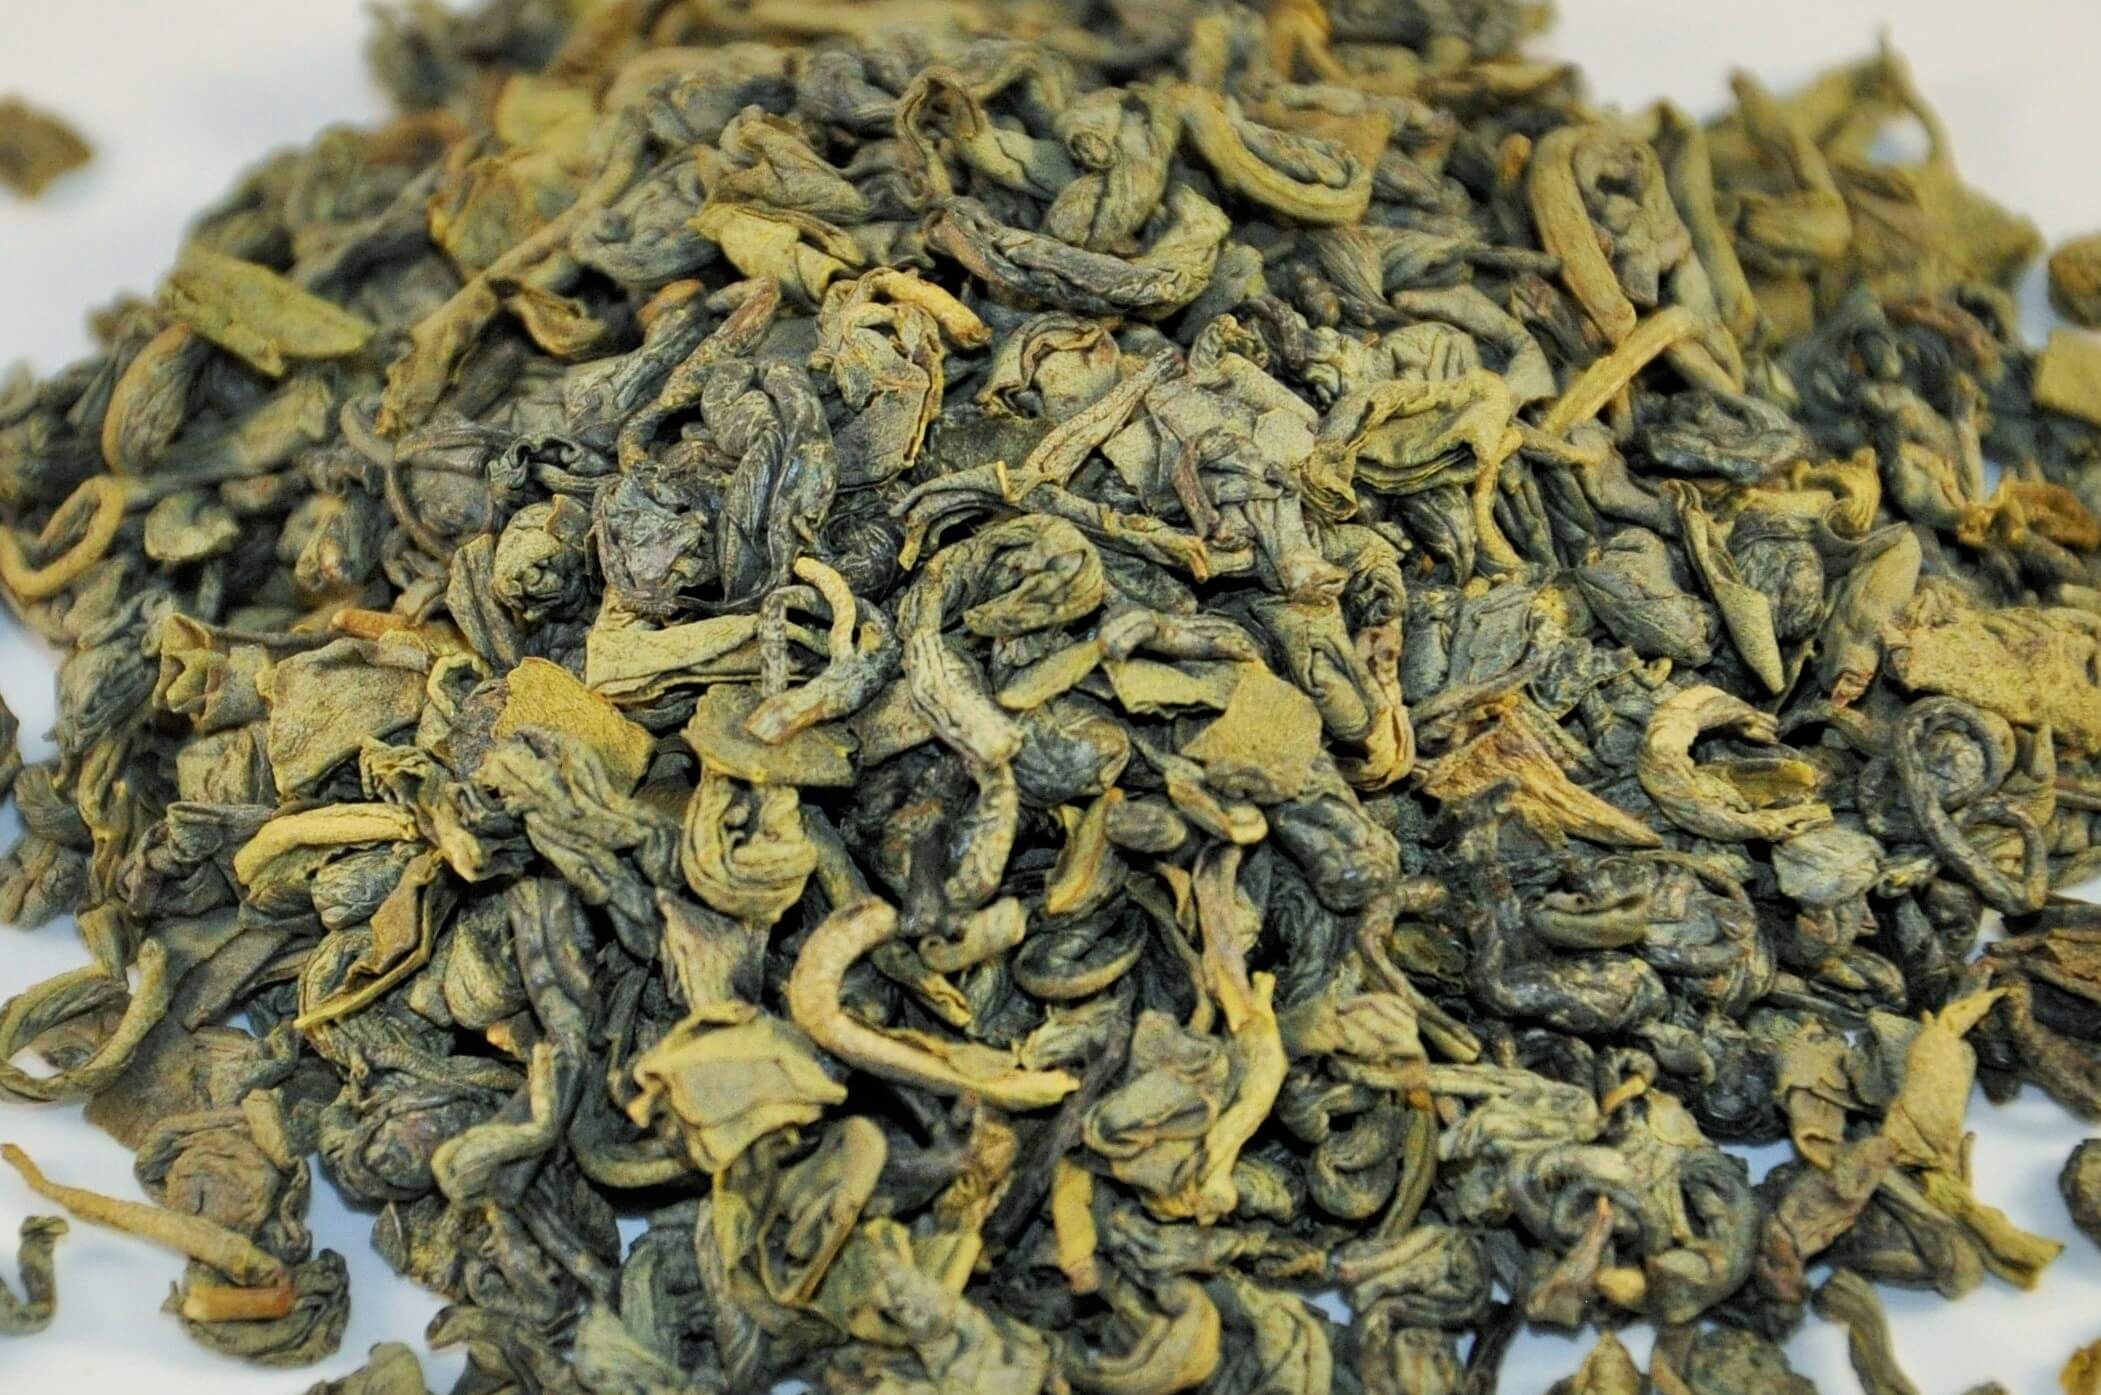 Types of Loose Tea - Natural Green Tea From Your Loose Teas